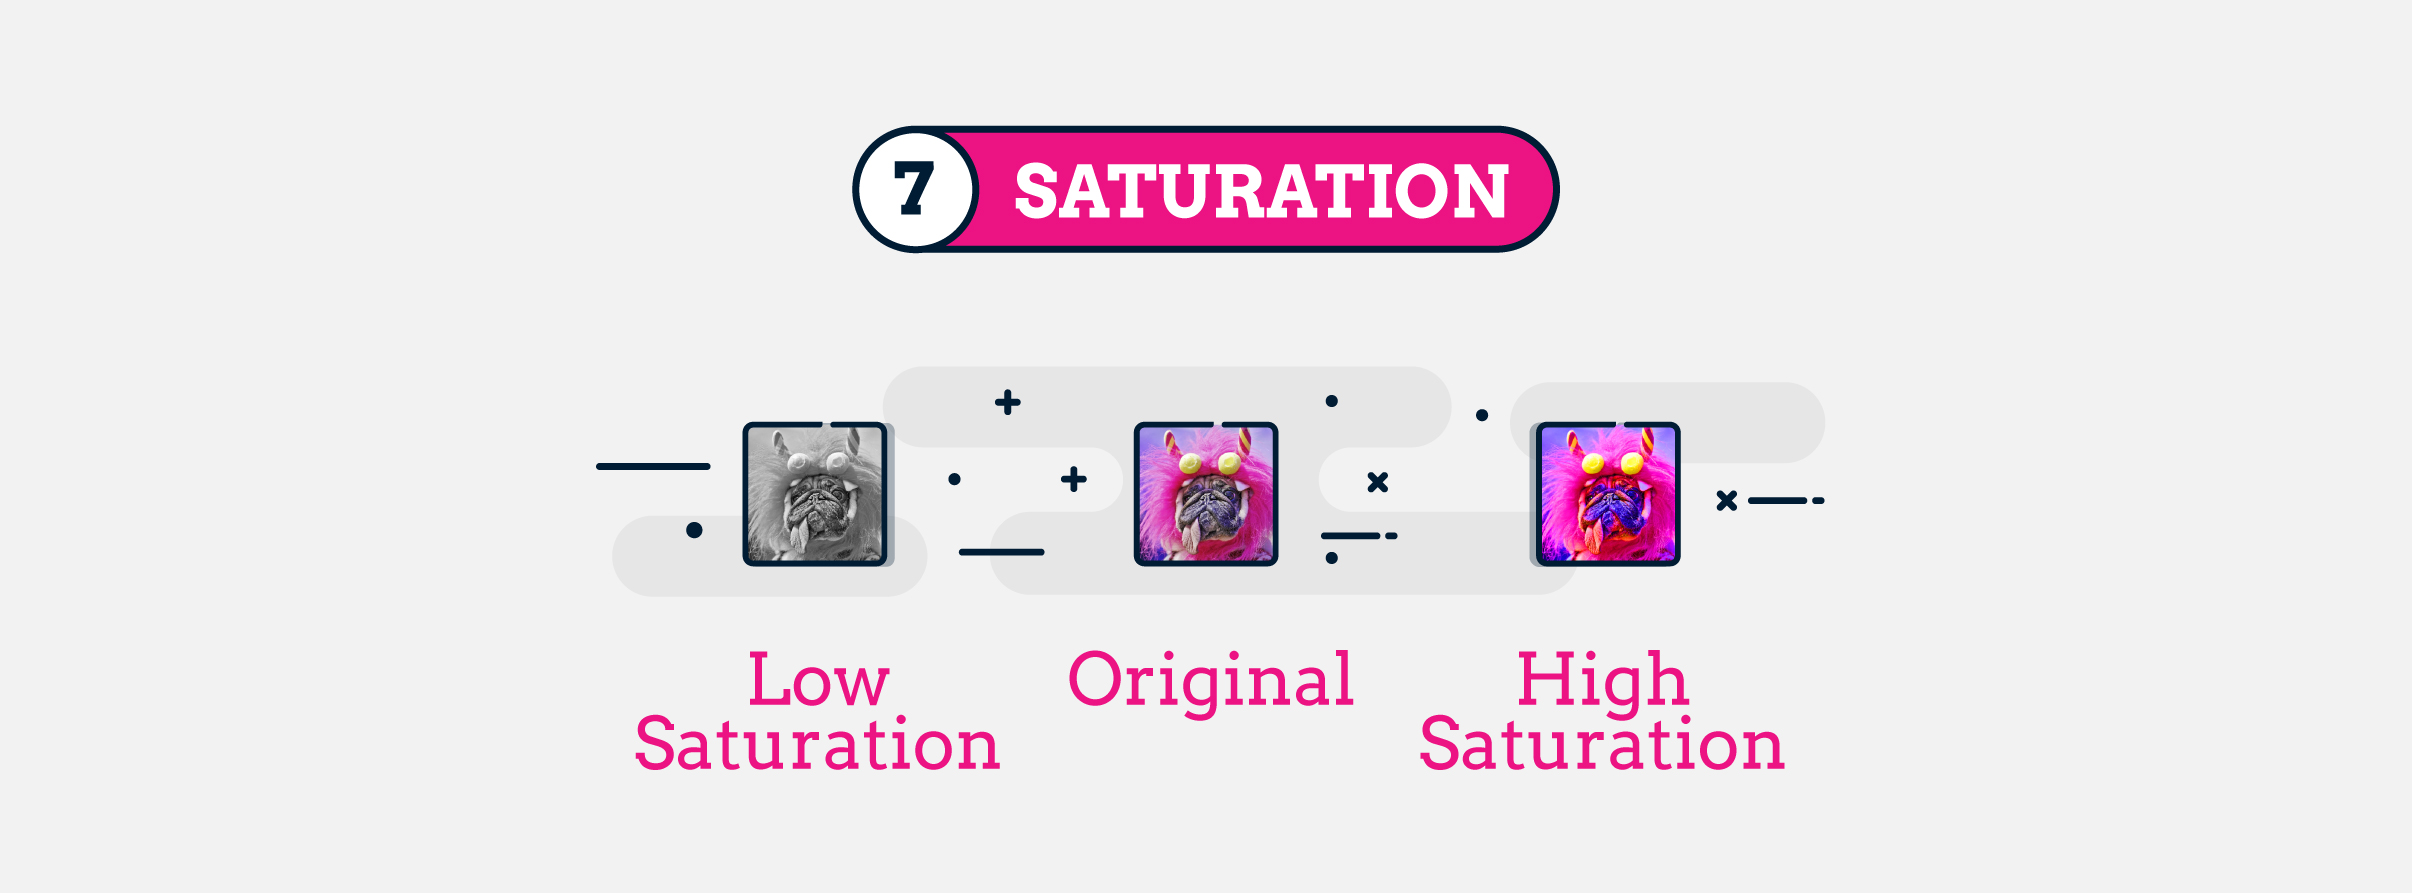 Design terms - saturation